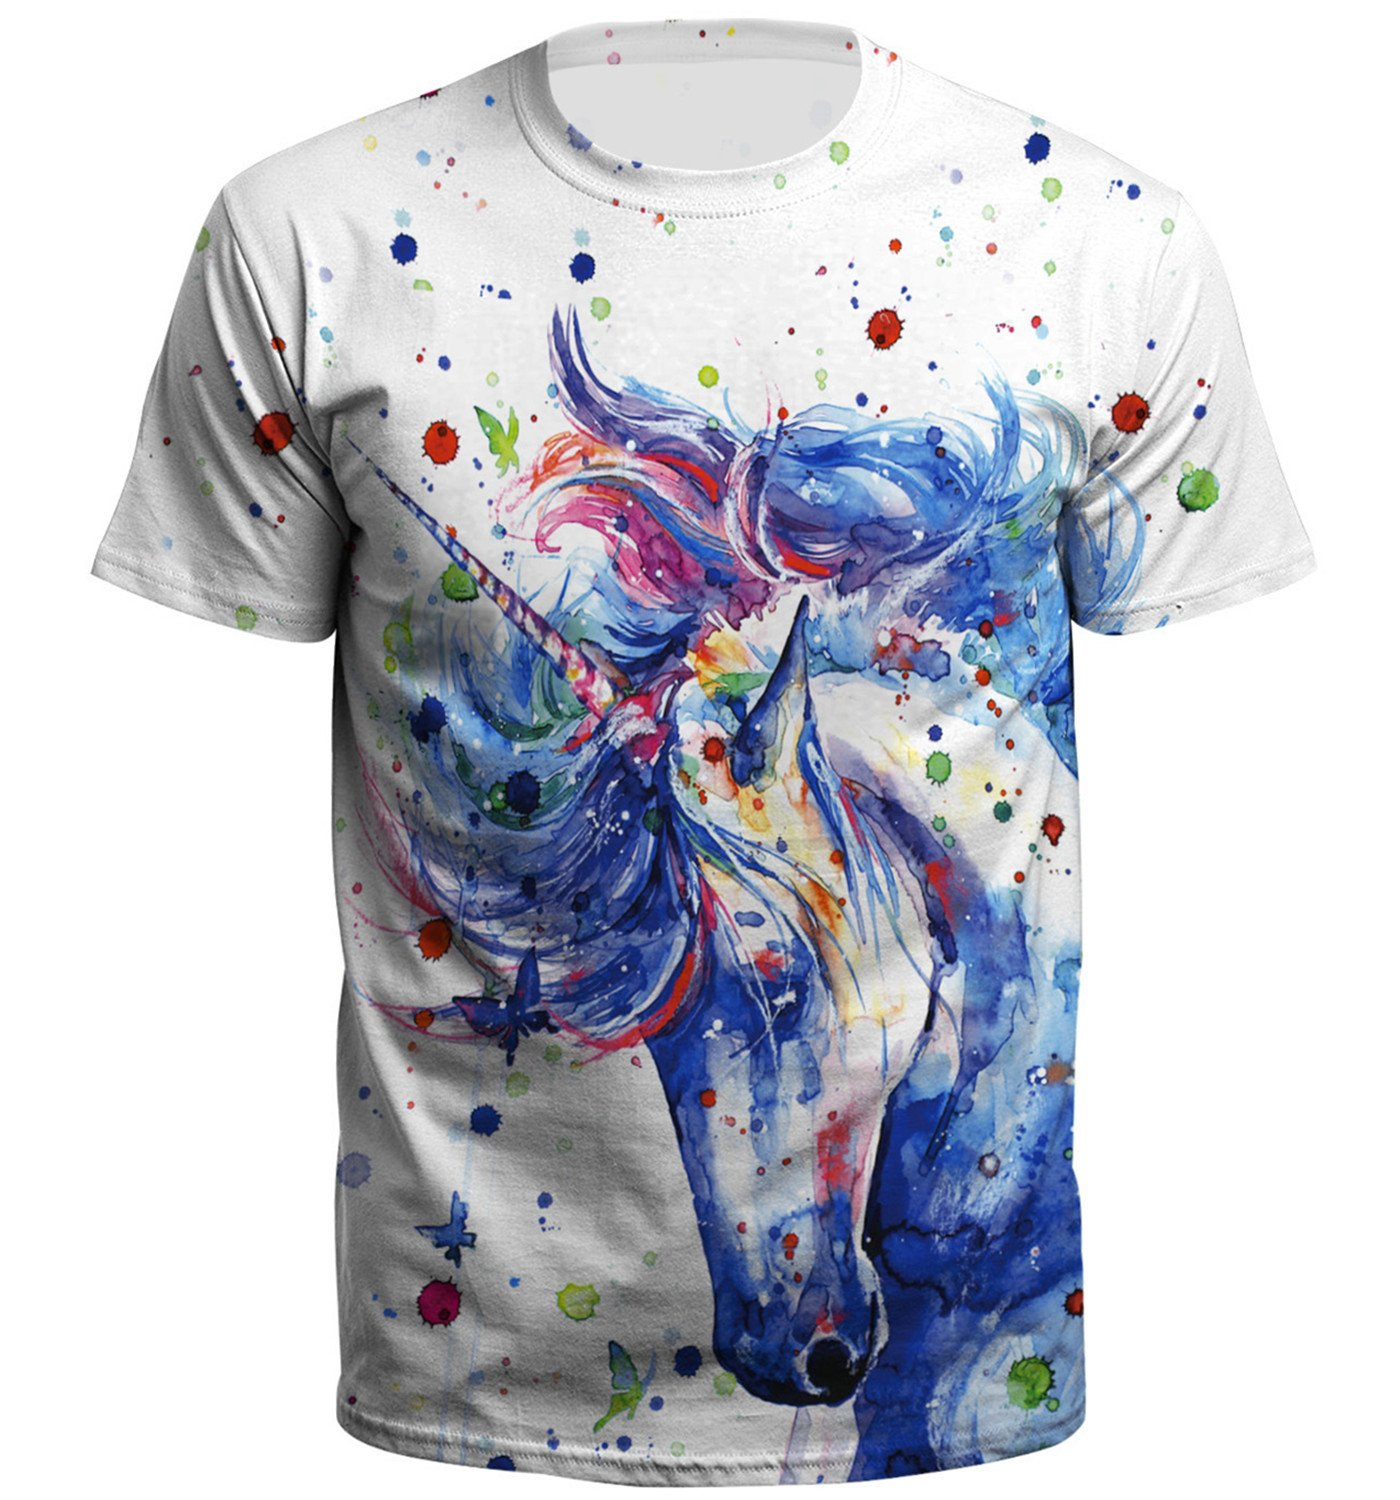 JollyCreek Unisex Boys Girls 3D Cartoon Printed Short Sleeve O-Neck Tee Shirt,Unicorn,S